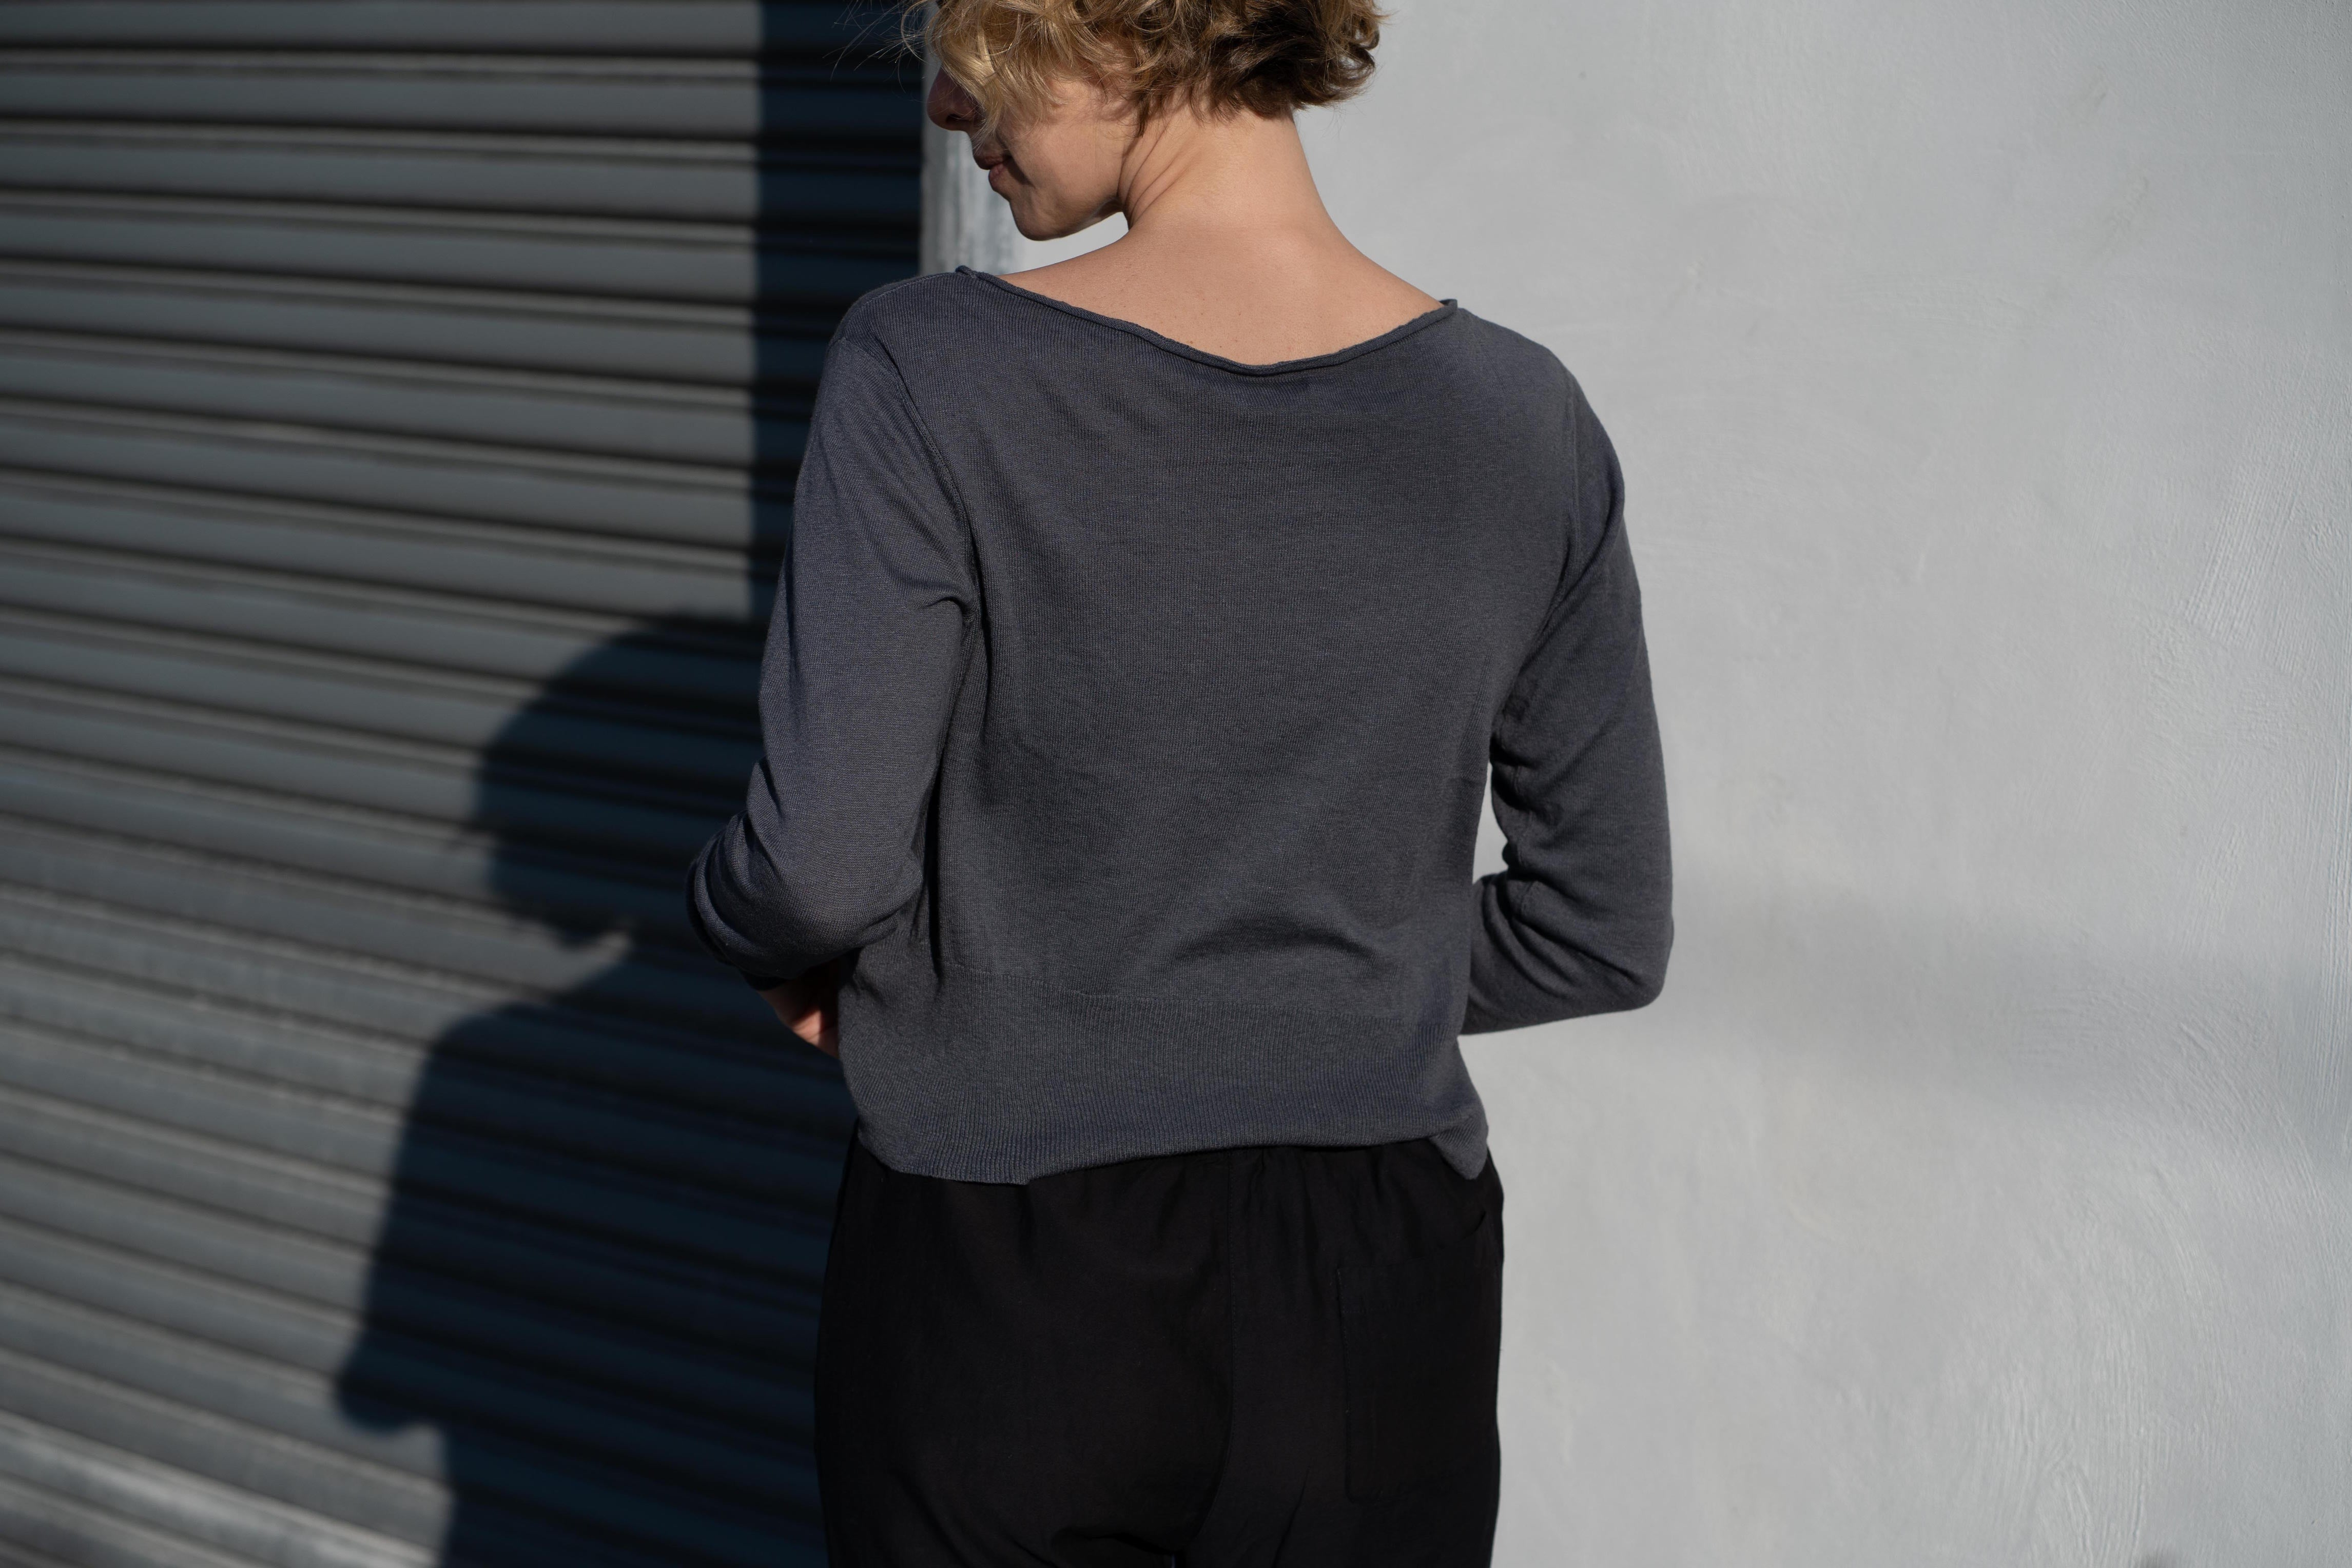 KES Asymmetric Pullover Sweater - Carbon